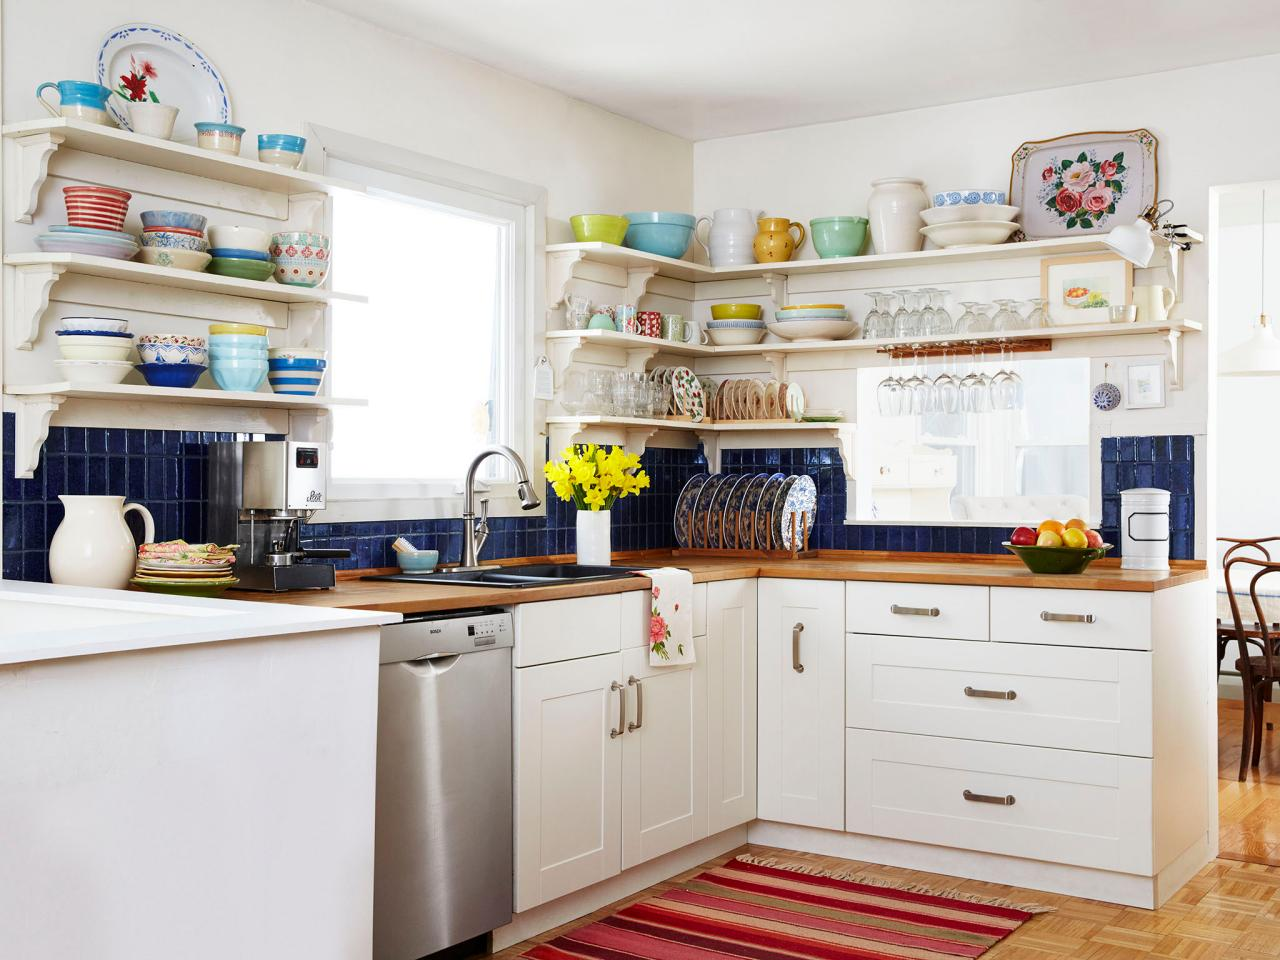 Personality-Packed Kitchen | HGTV